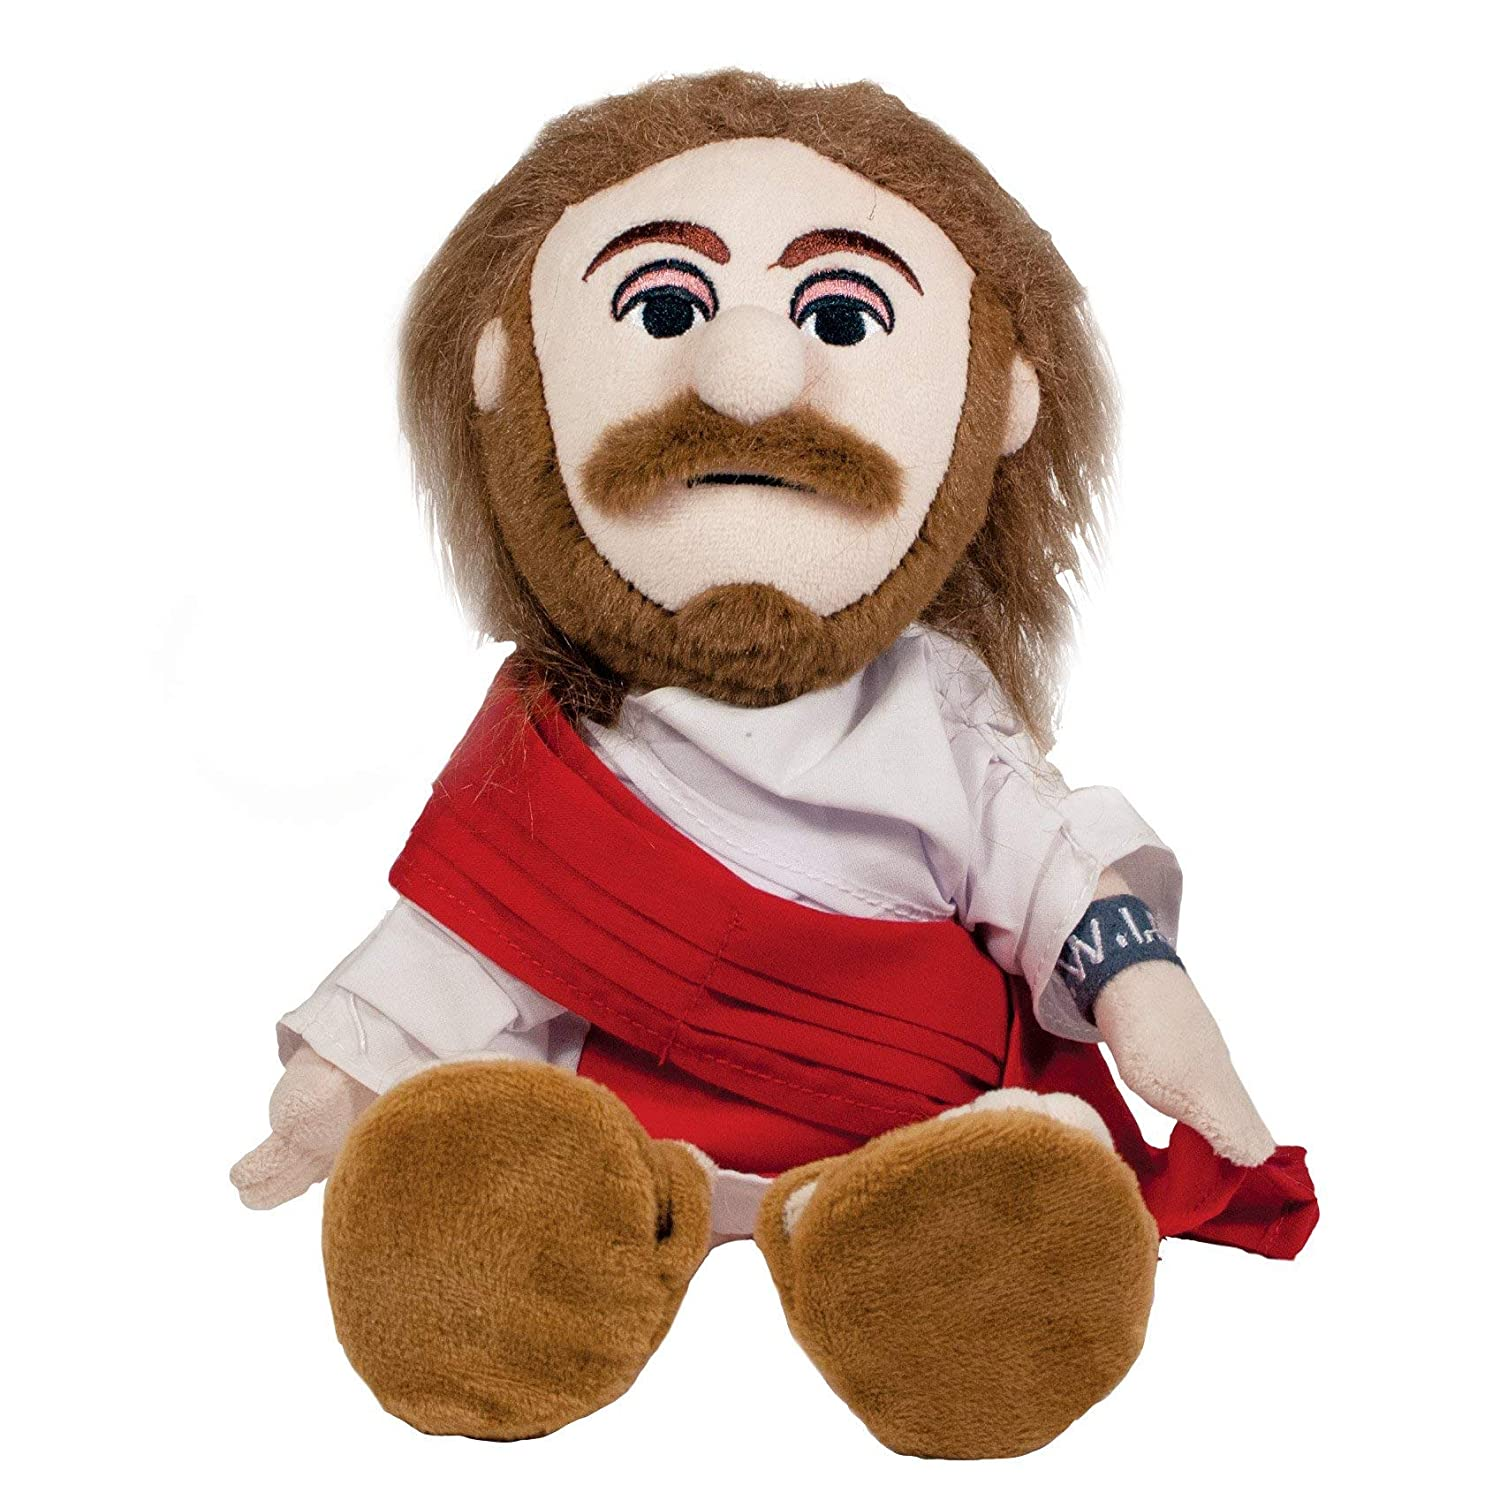 Unemployed Philosophers Guild Jesus Christ Little Thinker - 11' Plush Doll for Kids and Adults The Unemployed Philosophers Guild 289